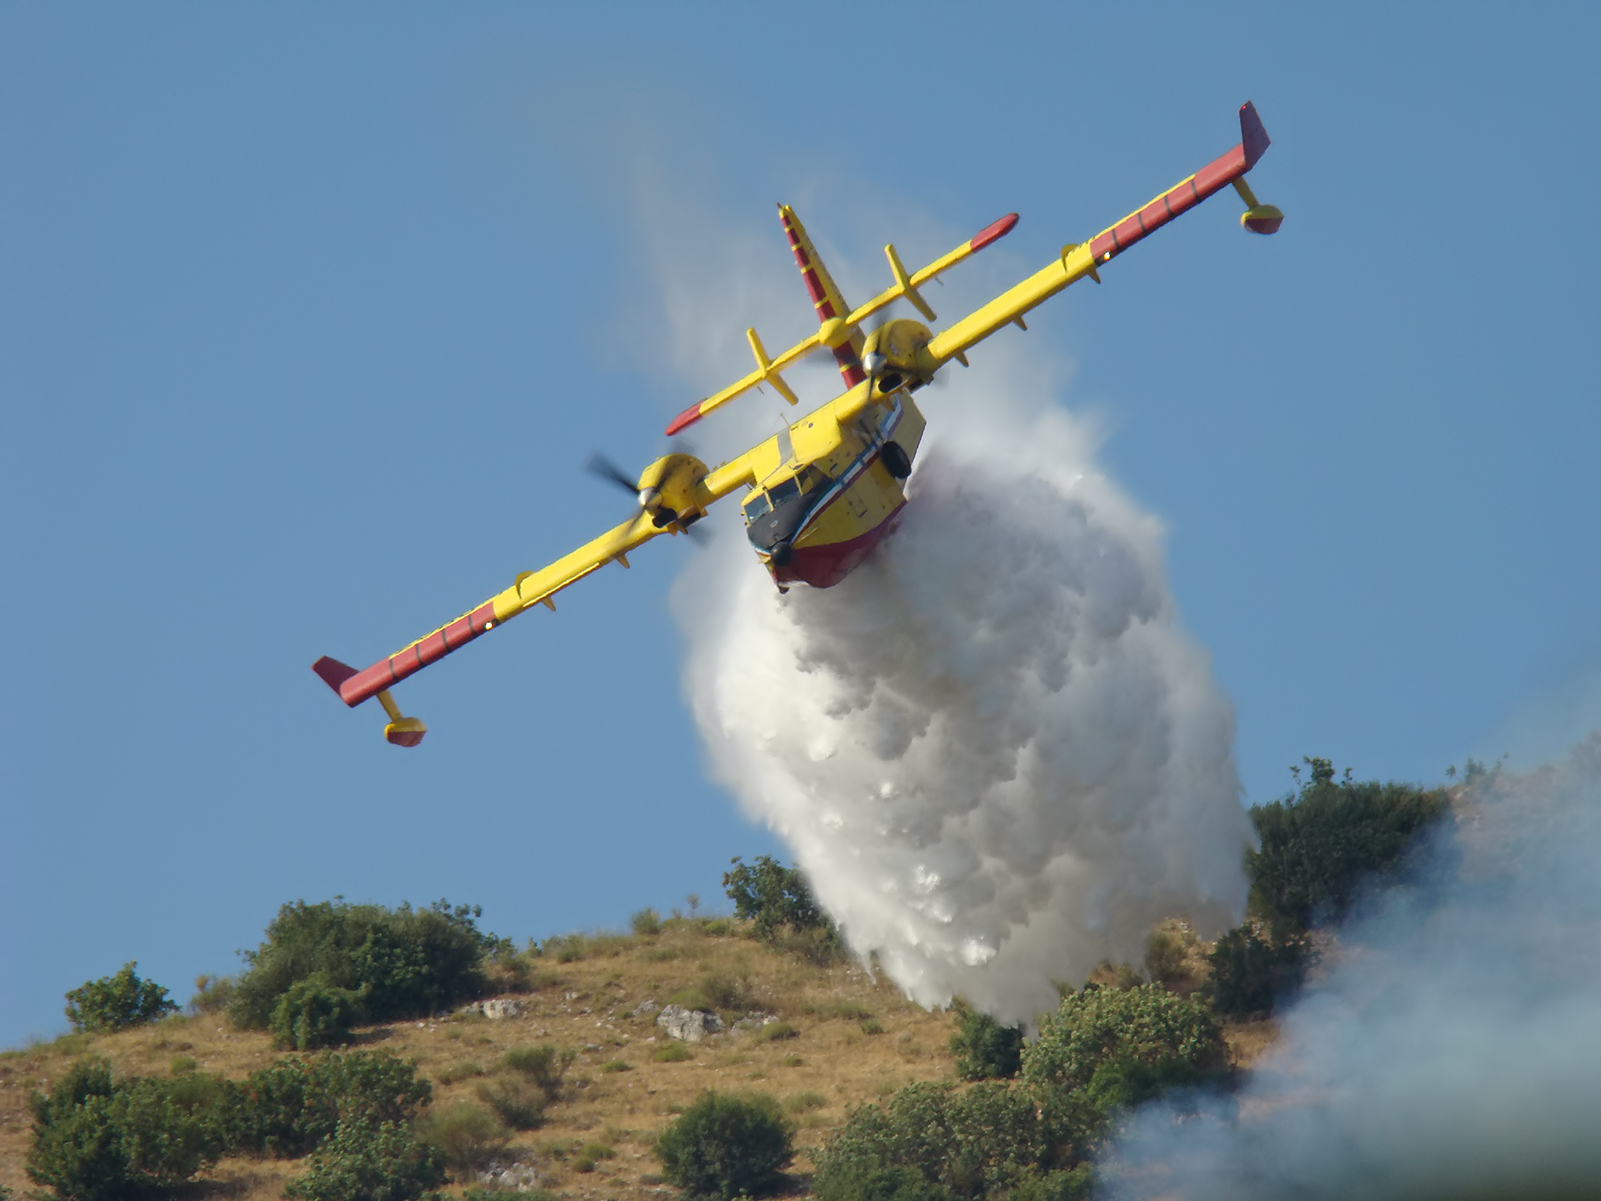 CL-415 Waterbomber in action